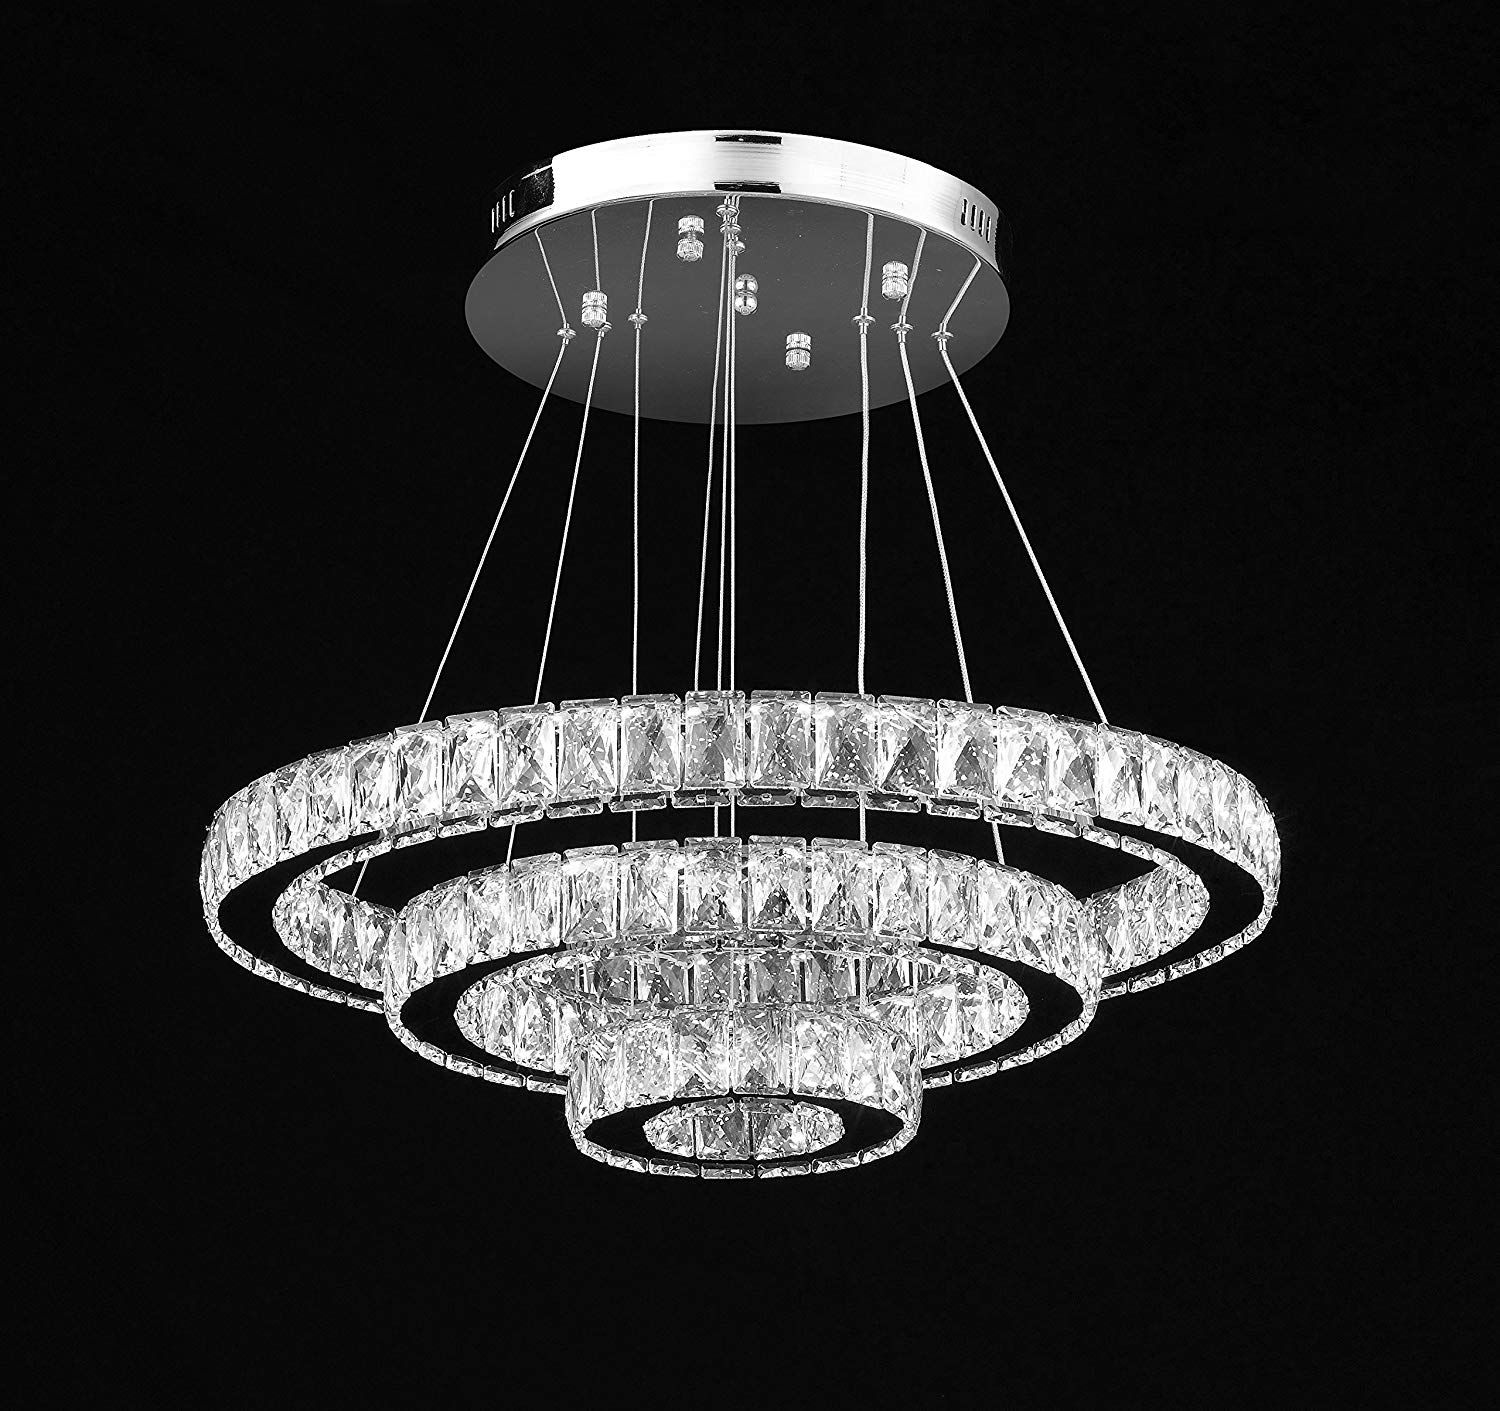 Crystal Elipse 3 Ring Chandelier Led Chandeliers Modern Contemporary Lighting 24 Wide W Adjustable Cables Modern Chandelier Led Chandelier Ring Chandelier